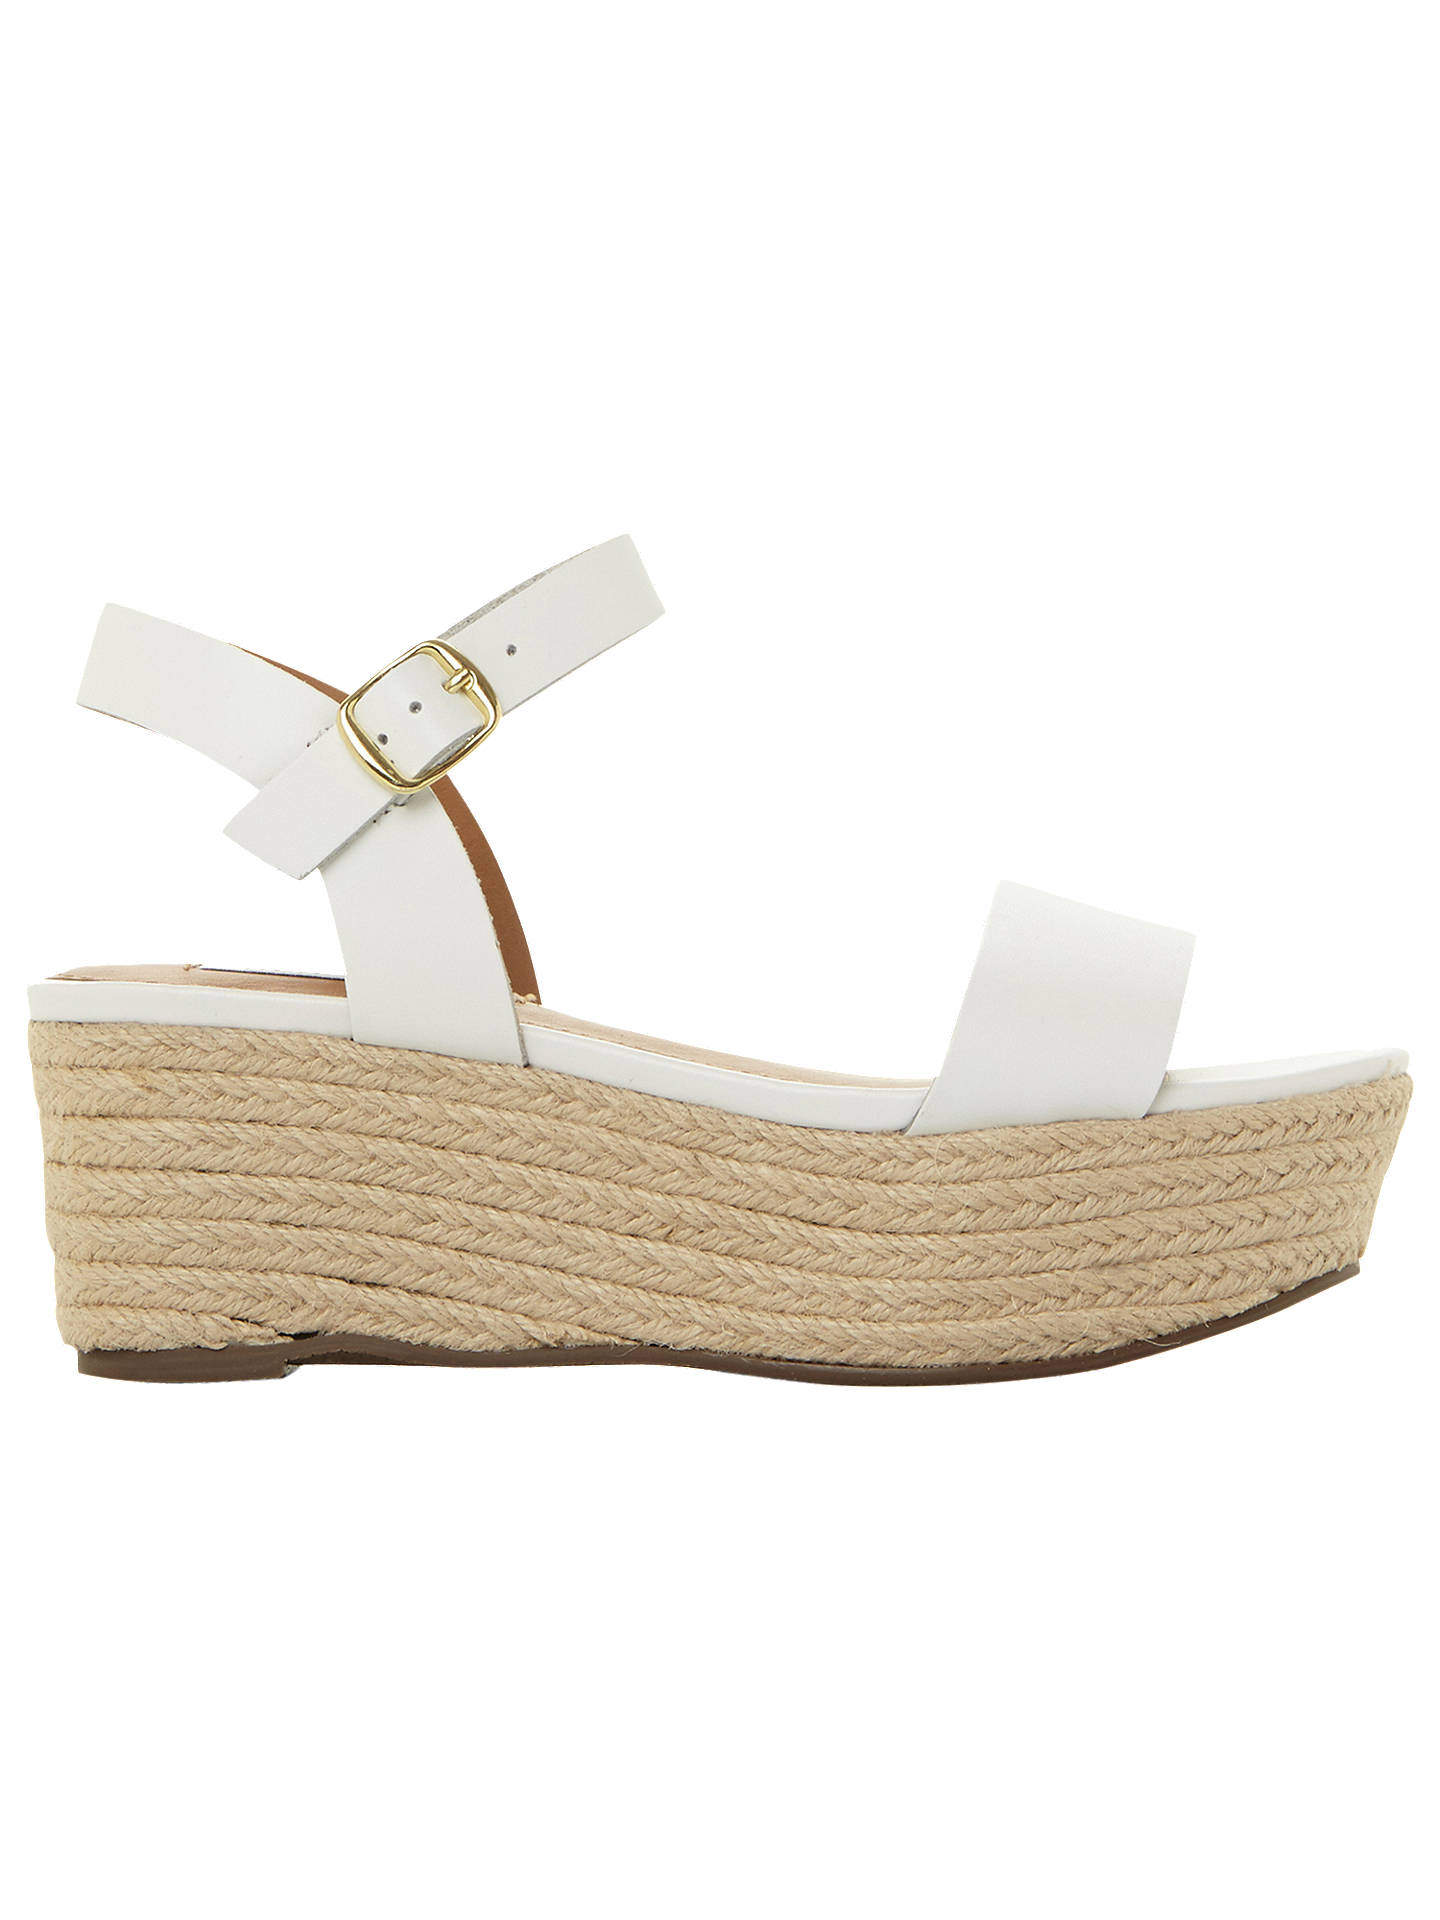 d9d2a44c1f07 Steve Madden Busy Flatform Sandals at John Lewis   Partners